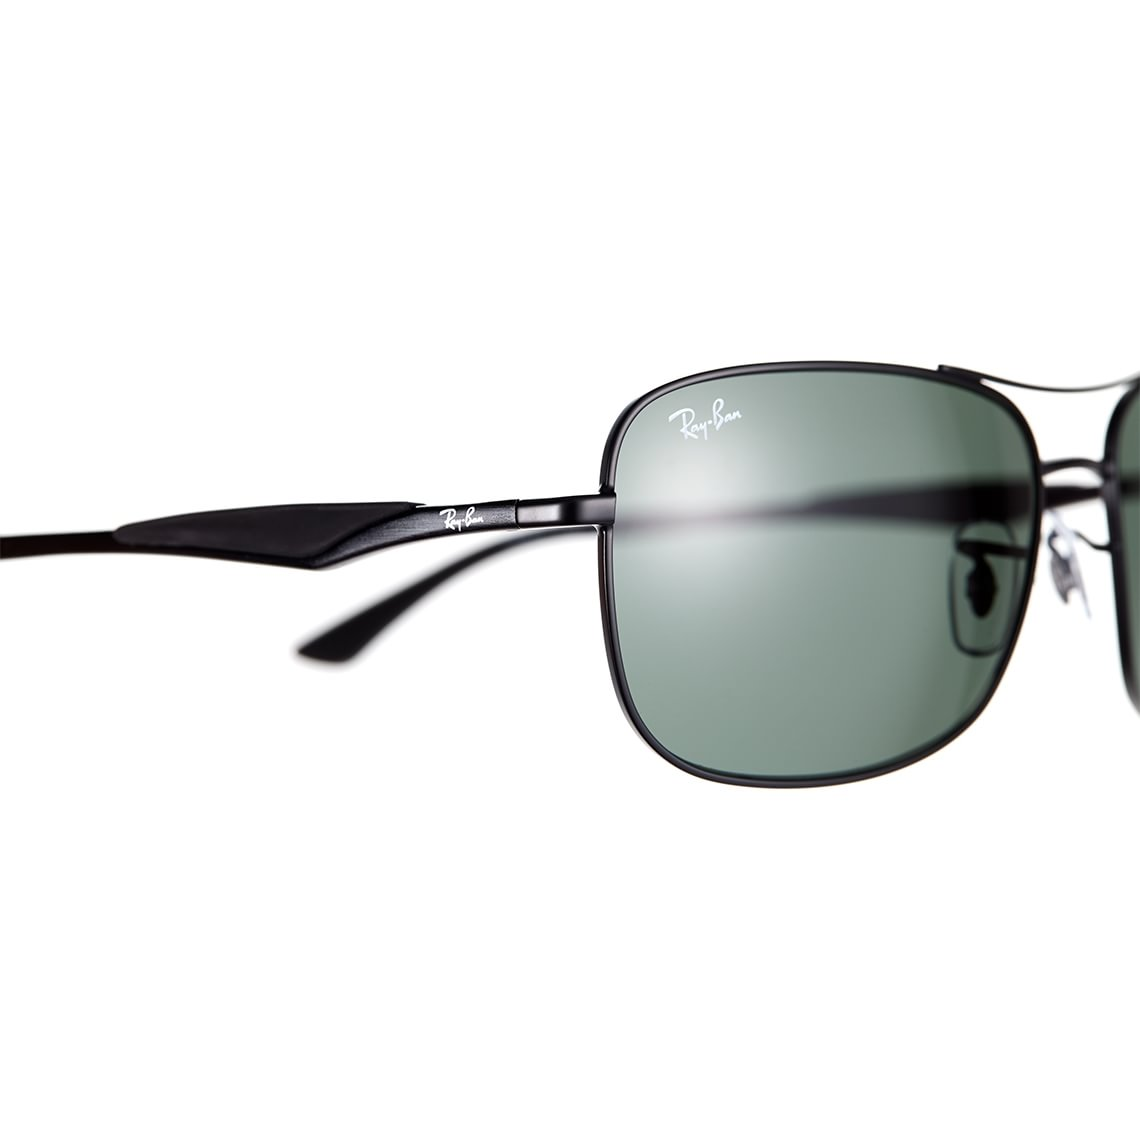 9799f0493d5 Ray Ban Rb3515 006 71 Sunglasses - Bitterroot Public Library